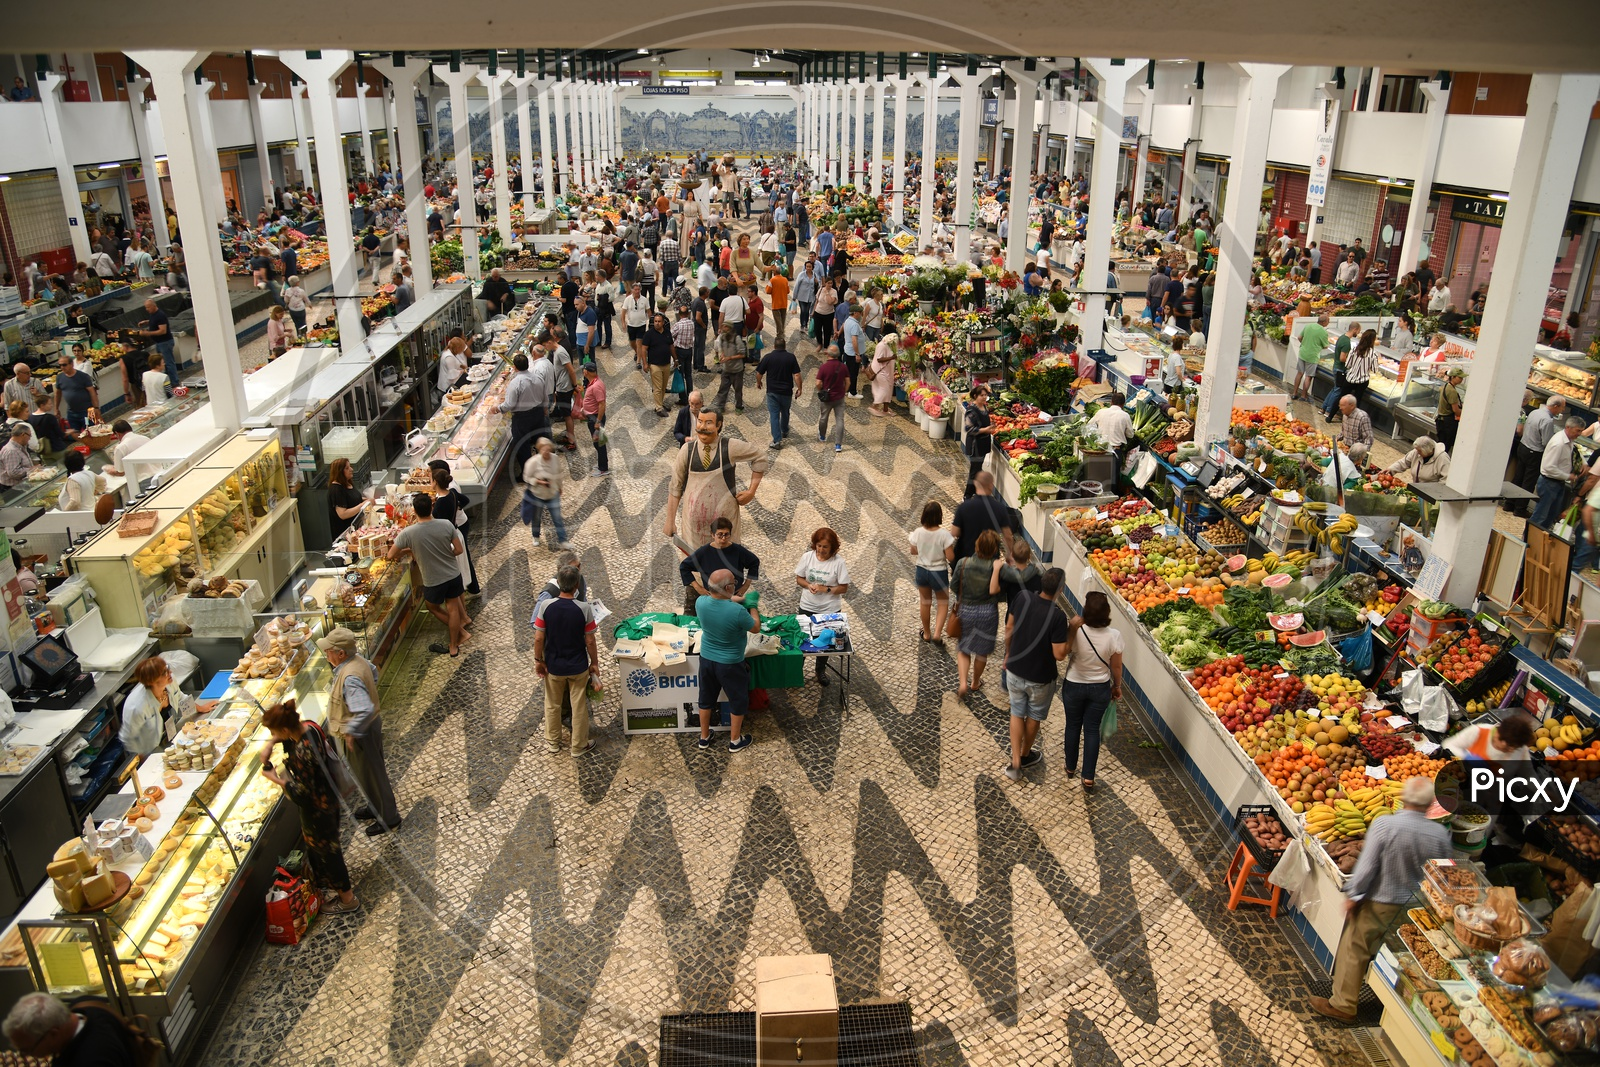 People Shopping For Groceries In A Market, Portugal